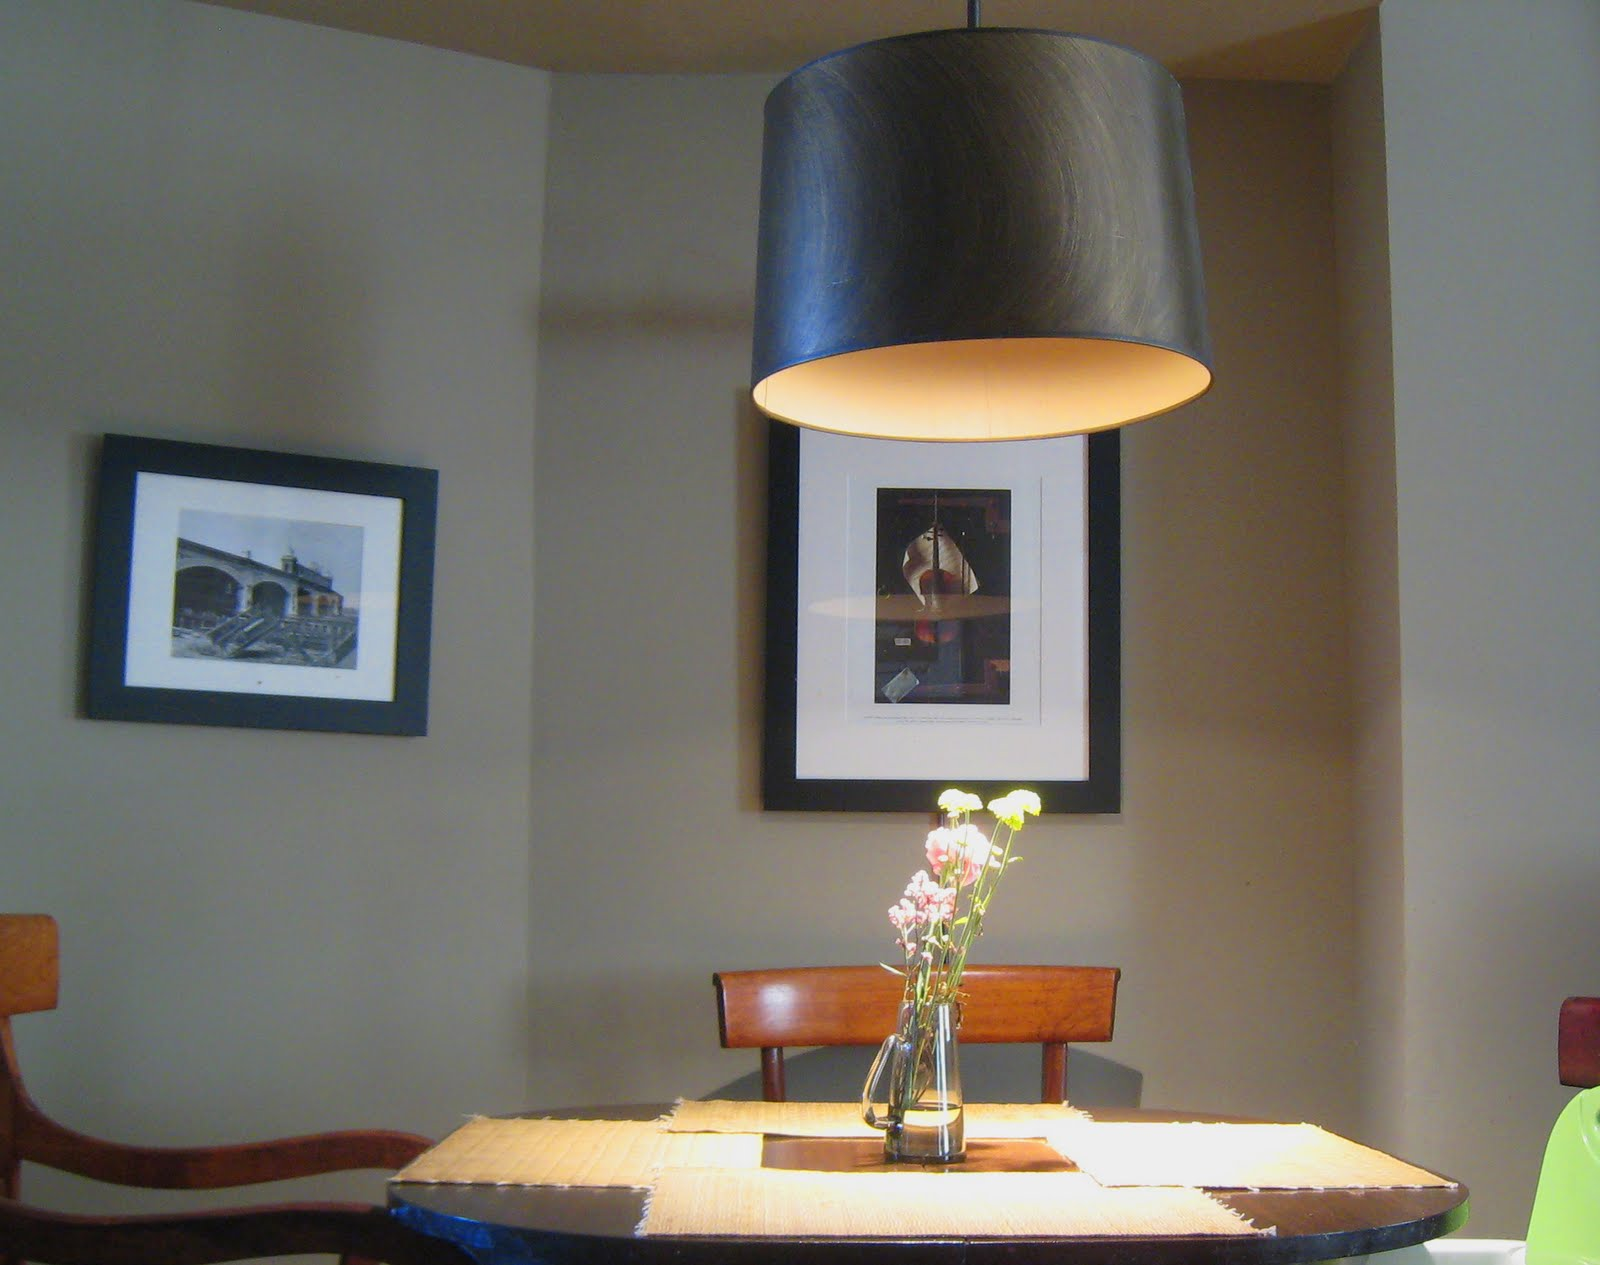 Height Of Light Fixture Over Coffee Table Lighting Designs